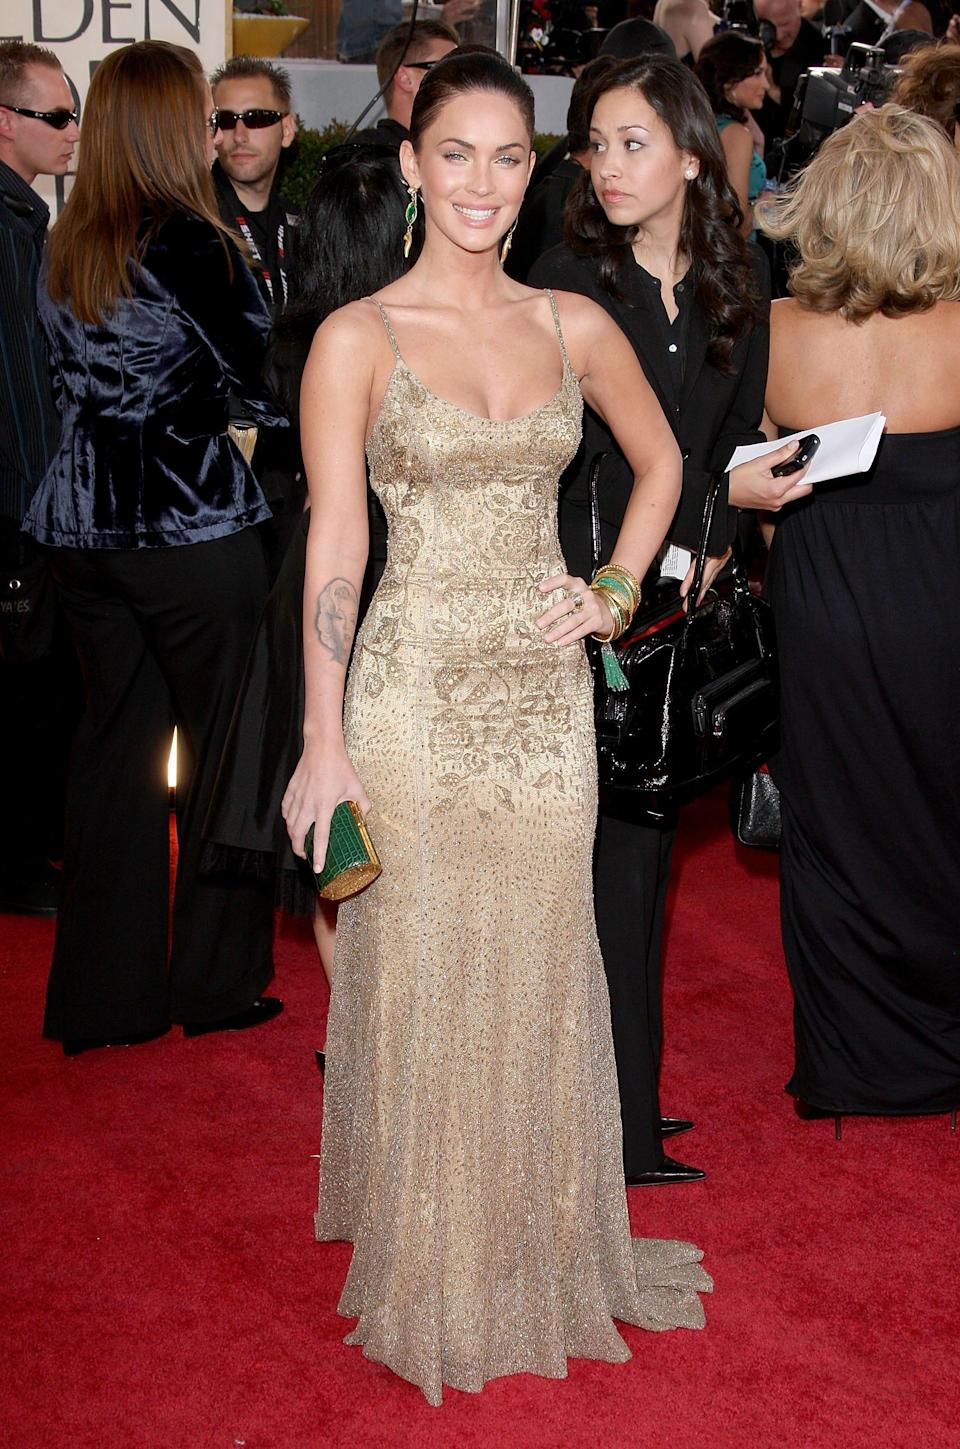 Megan Fox said she wore a Ralph Lauren gown to the 2009 Golden Globes, where she says too much alcohol led her to make regrettable comments on the red carpet.